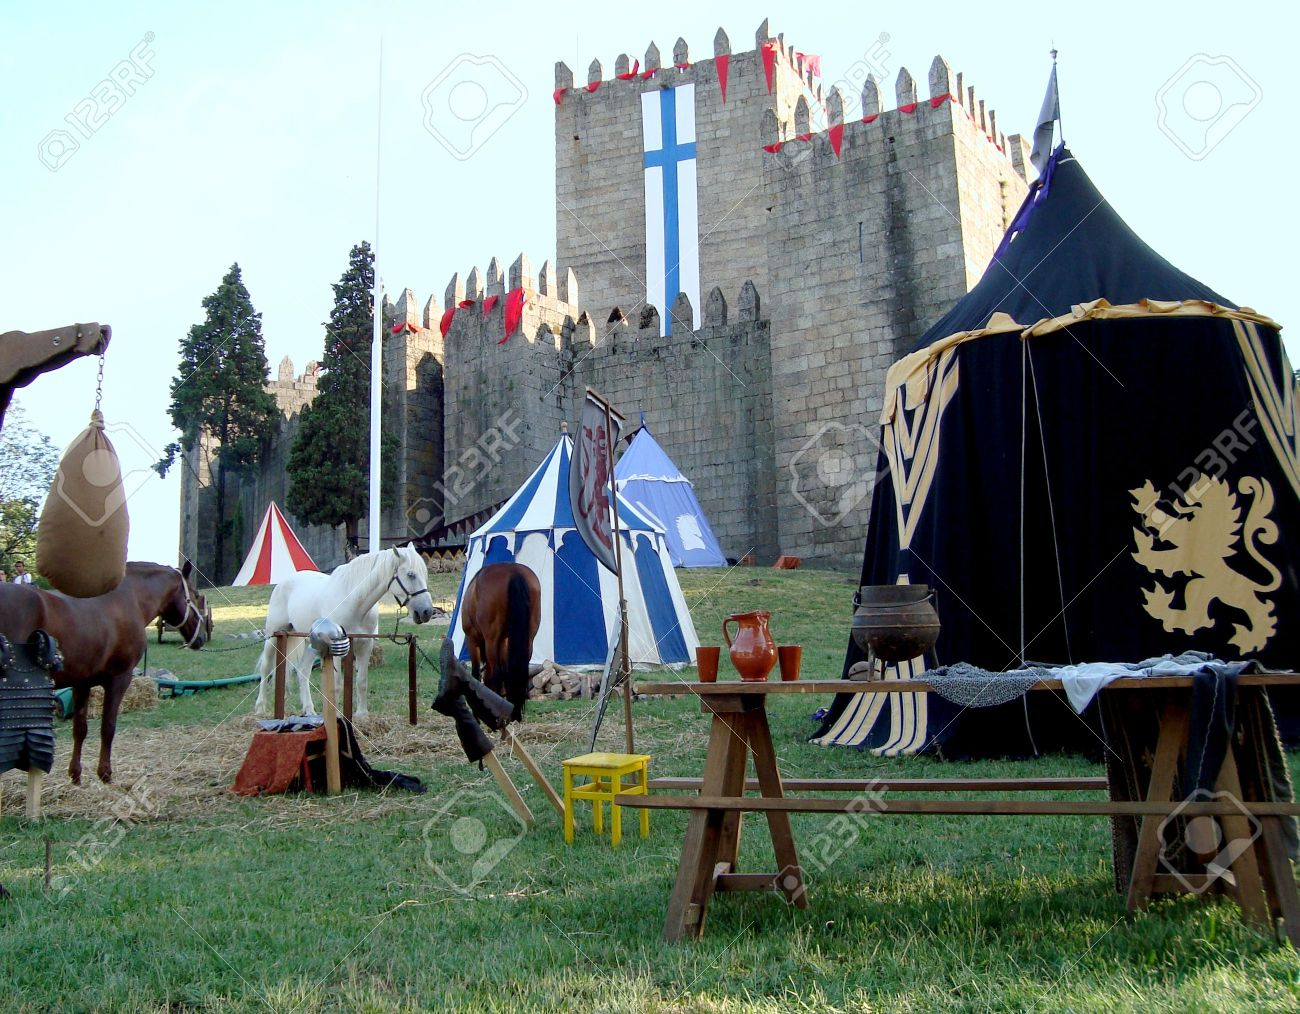 medieval castle and tents on a horse tournament Stock Photo - 5097239 & Medieval Castle And Tents On A Horse Tournament Stock Photo ...